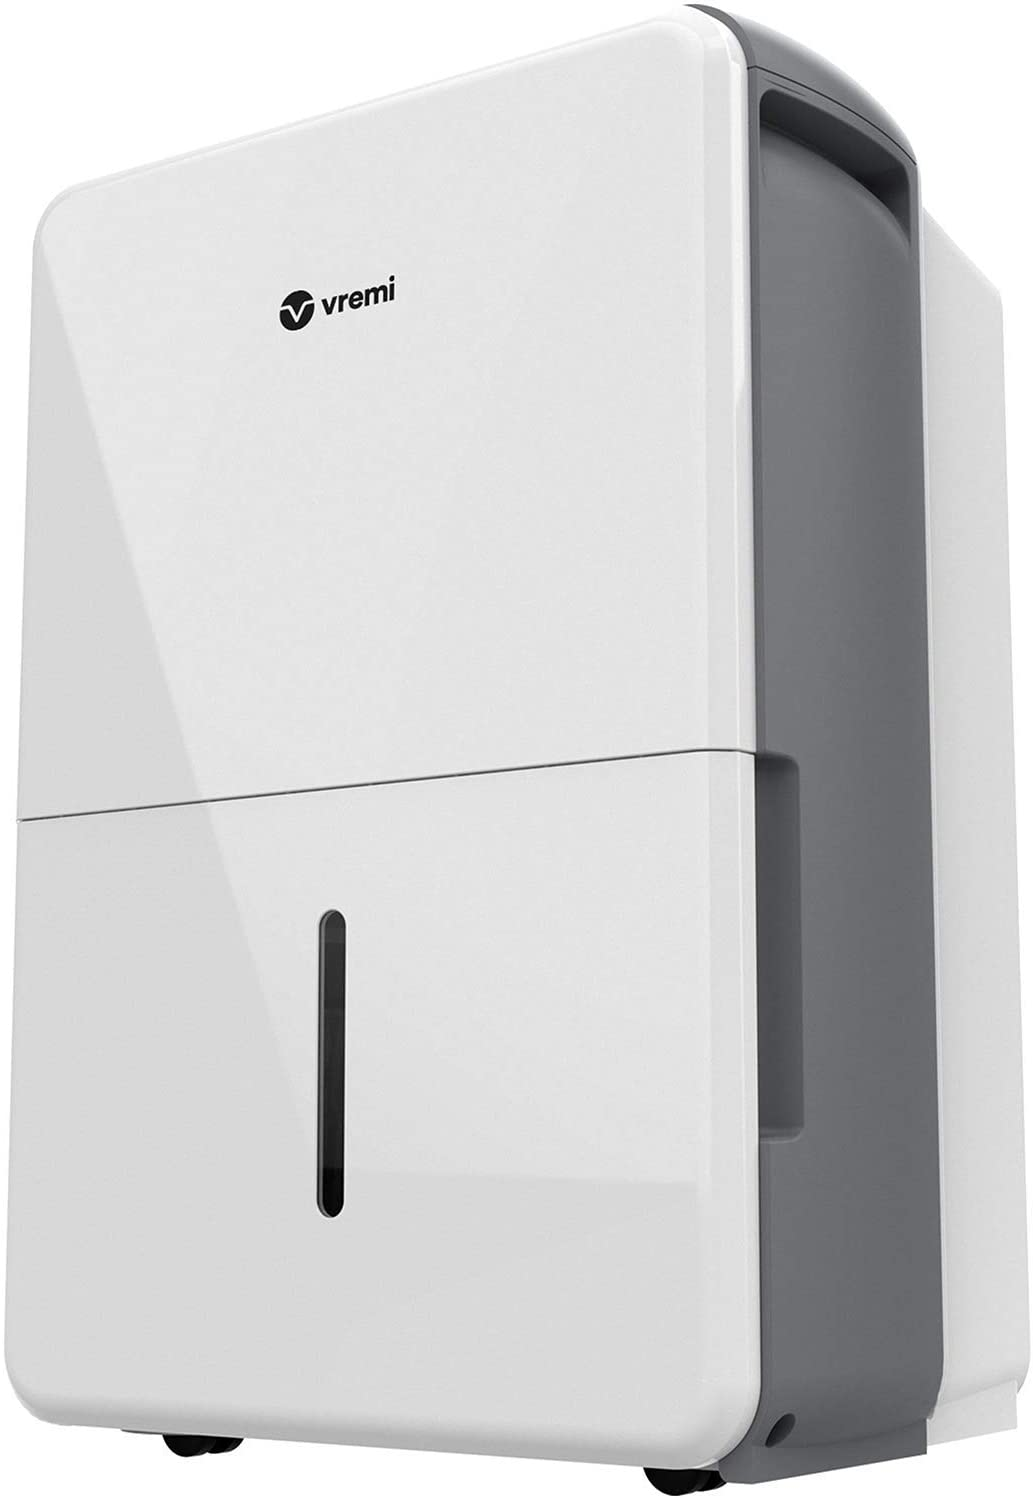 5 New Best Dehumidifier for 1000 Square Feet: Reviews in 2021